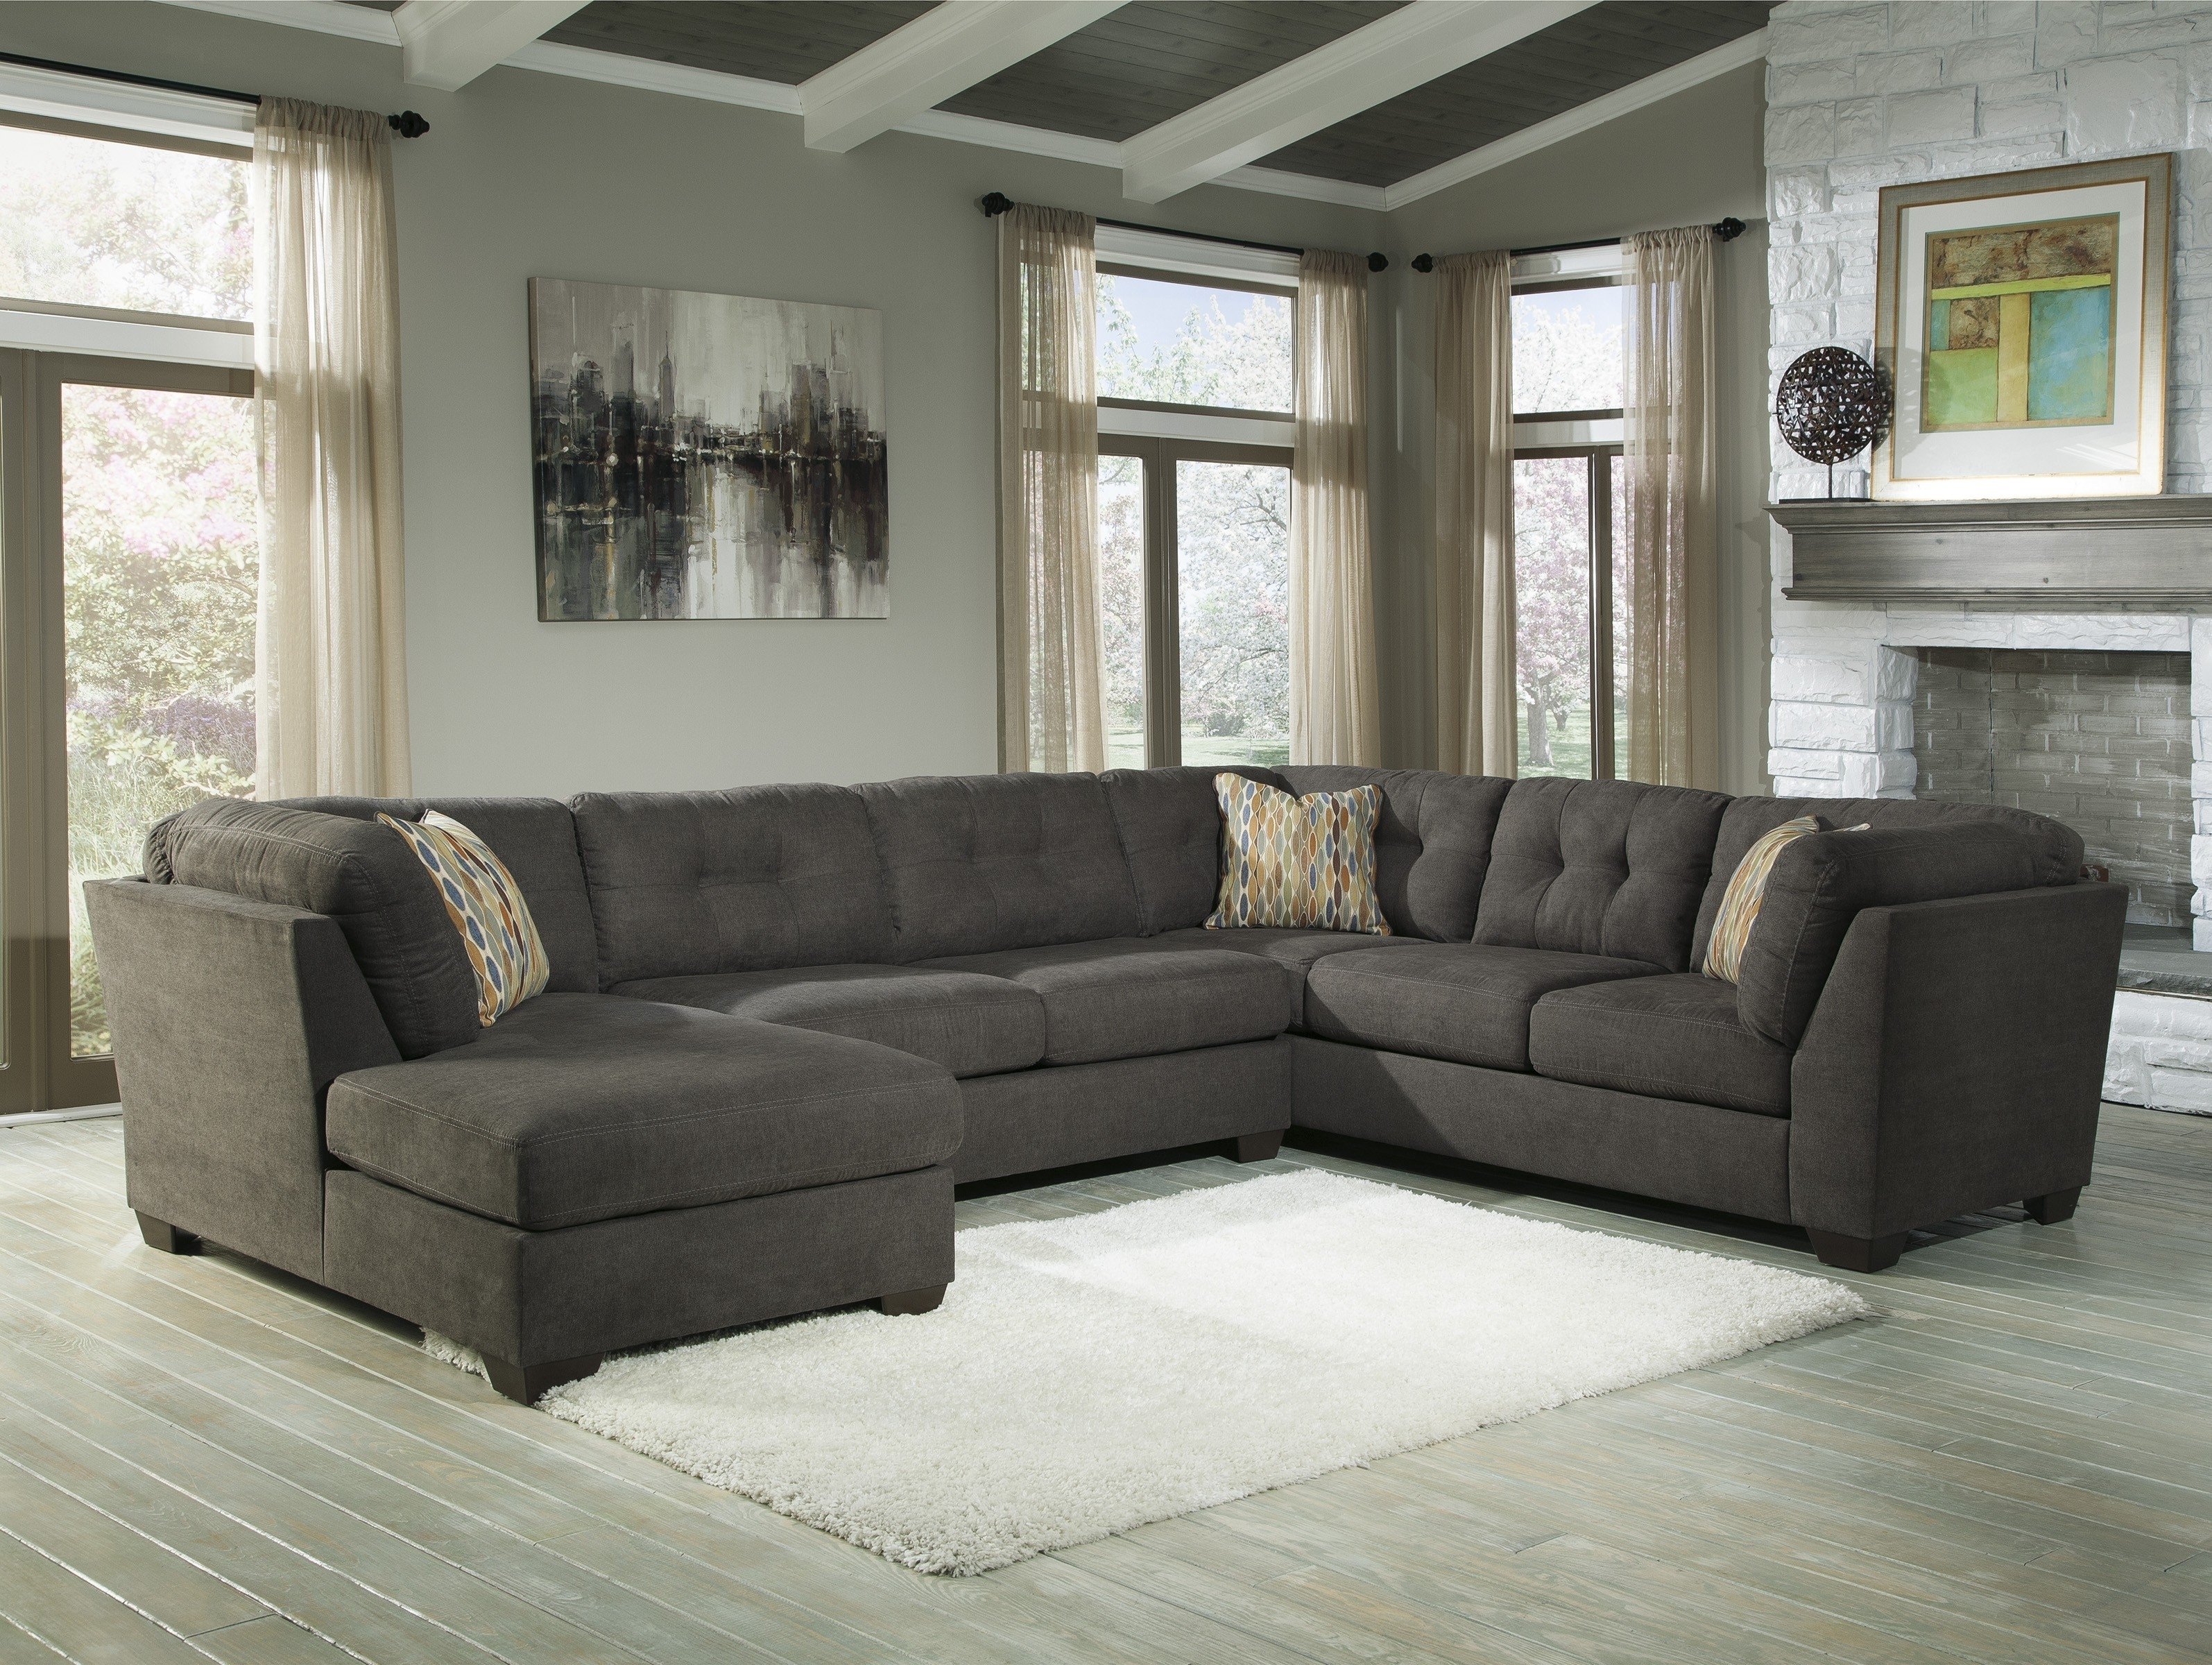 3 Piece Sectional Sofa Dimensions | Baci Living Room throughout Malbry Point 3 Piece Sectionals With Raf Chaise